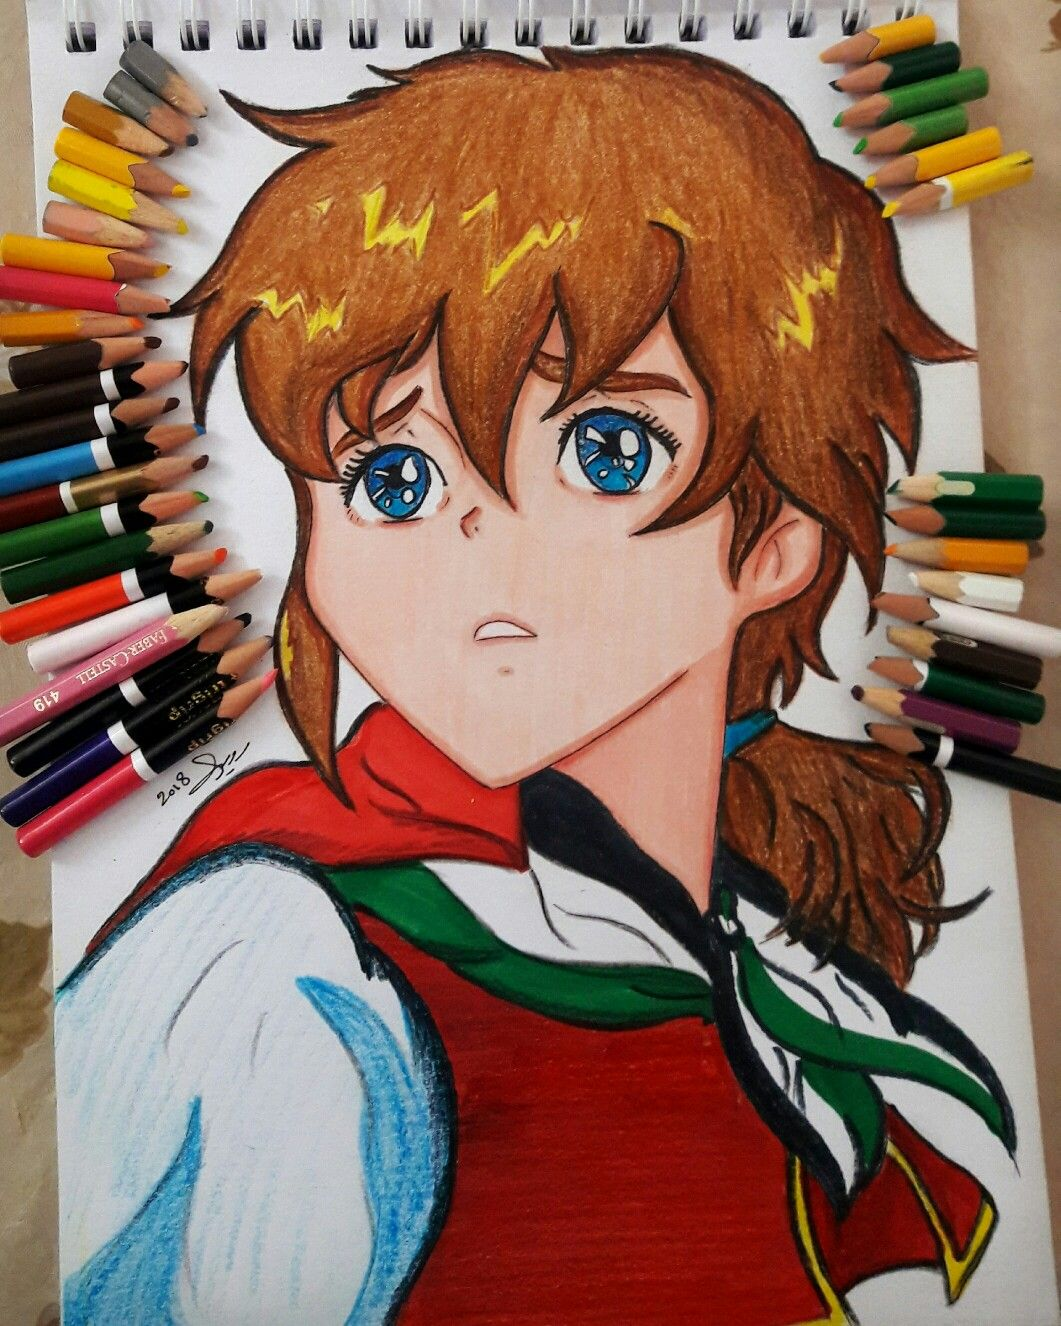 Reemy My Drawing رسمتي لريمي Anime Cartoon Girl Spacetoon Drawing Paint Colore Cute Palestine Drawings My Drawings Cartoon Drawings